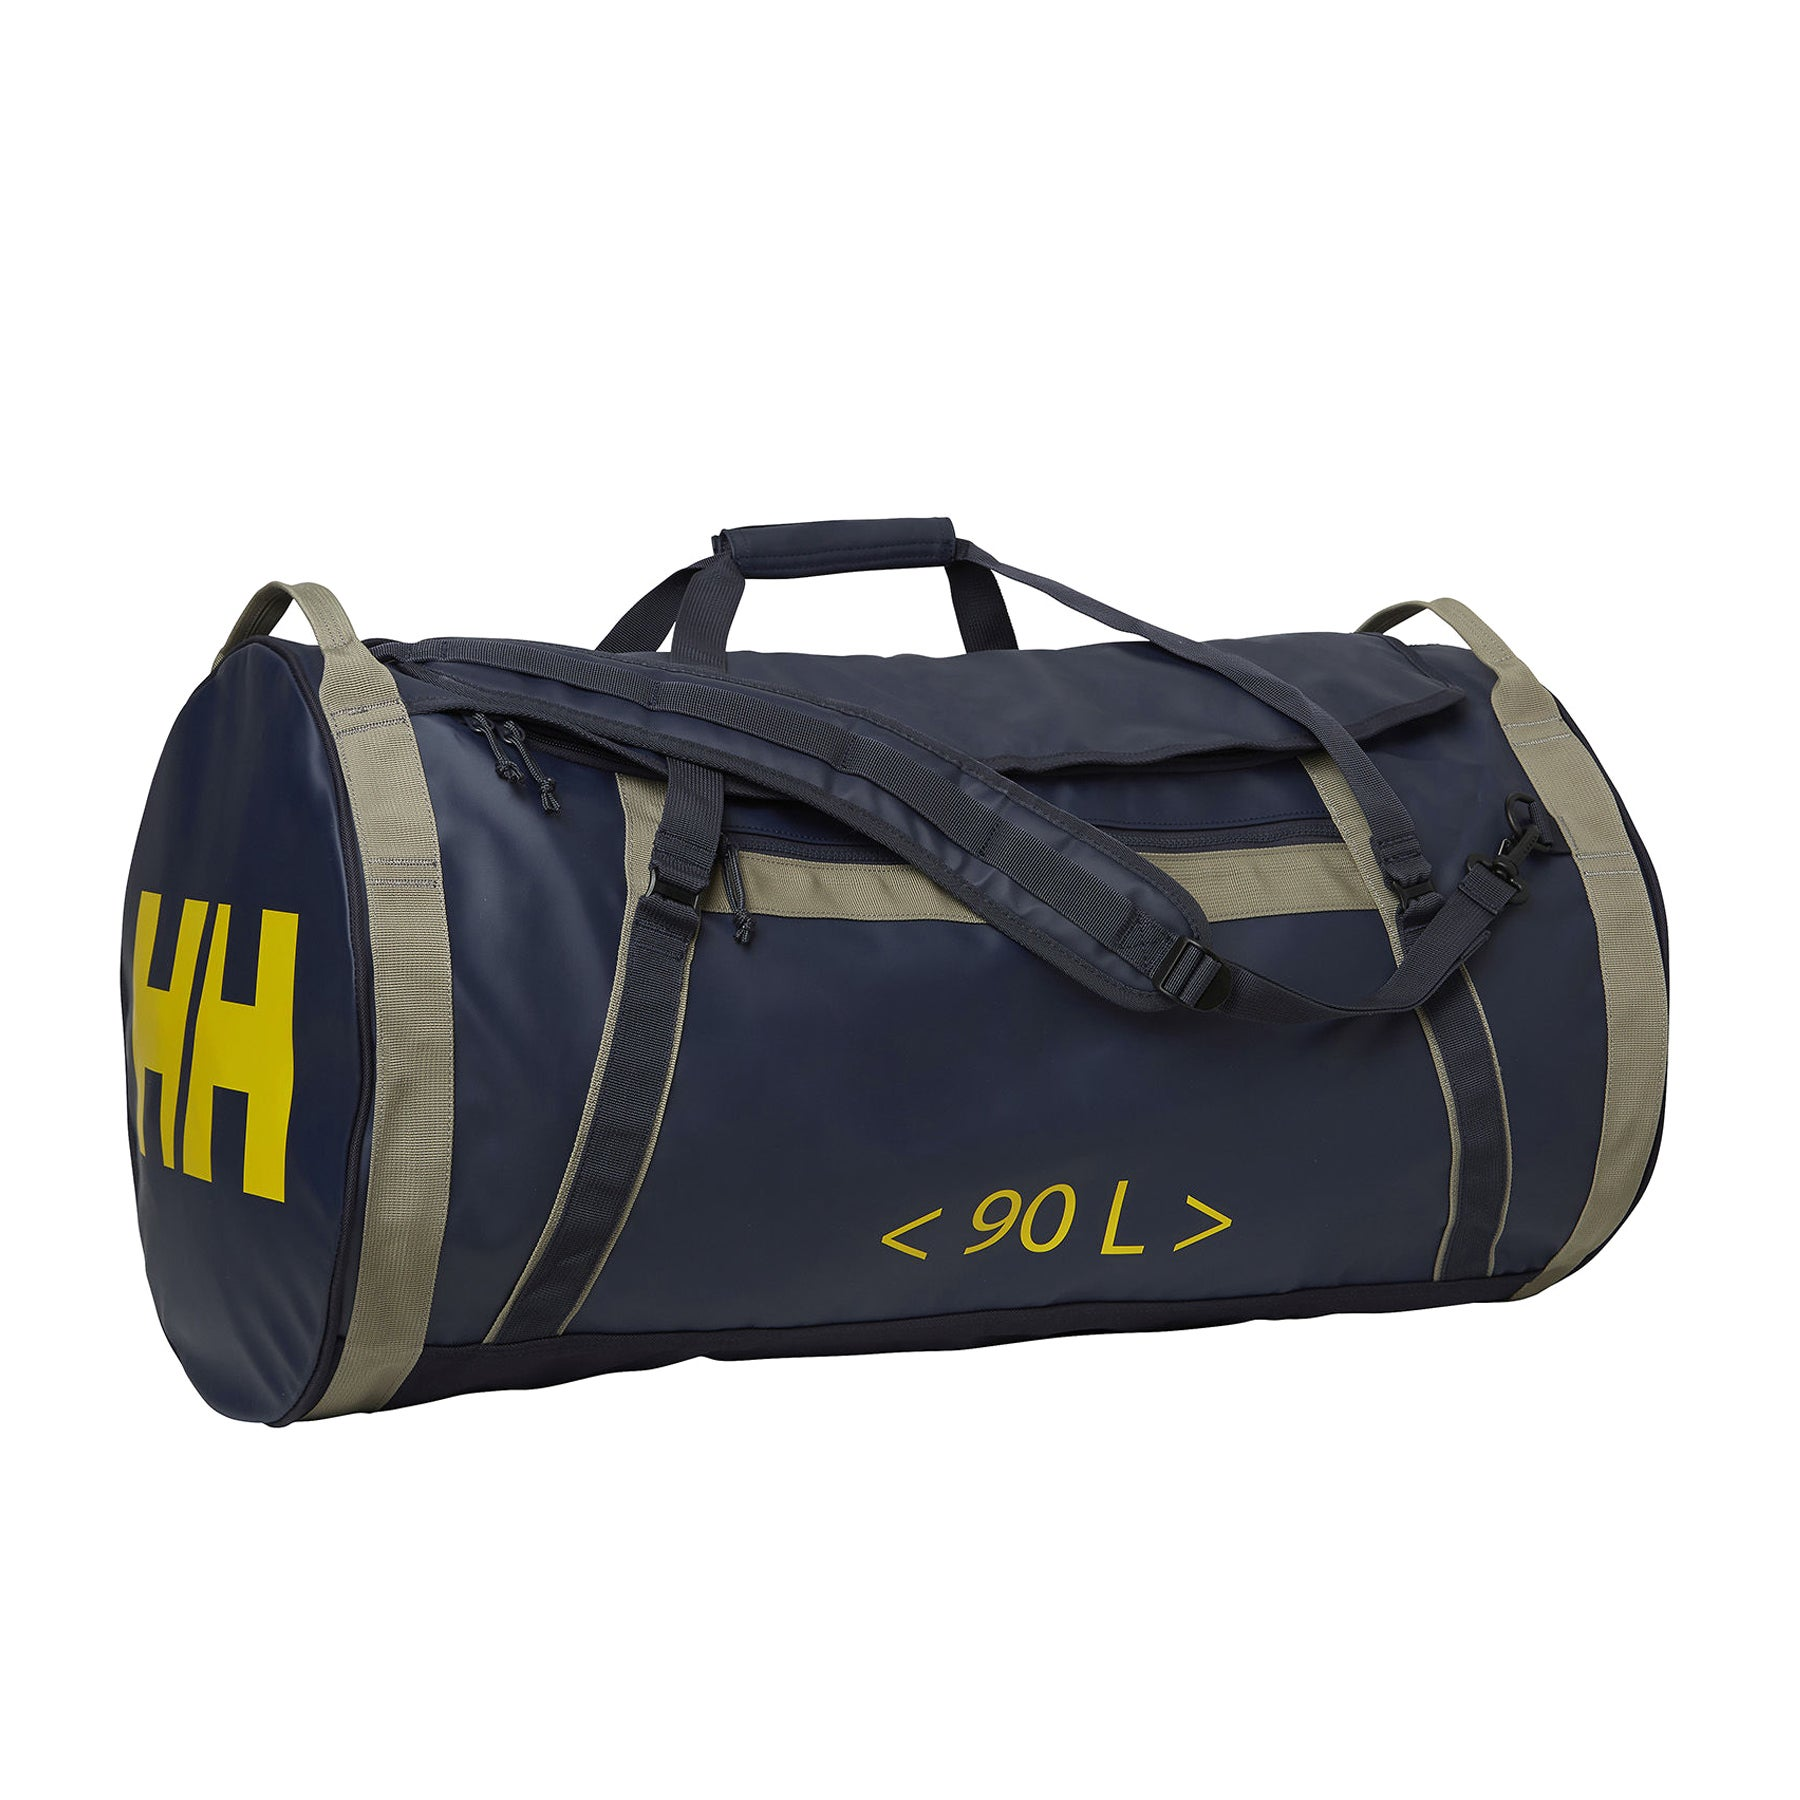 Helly Hansen HH2 90L Duffle Bag - Graphite Blue